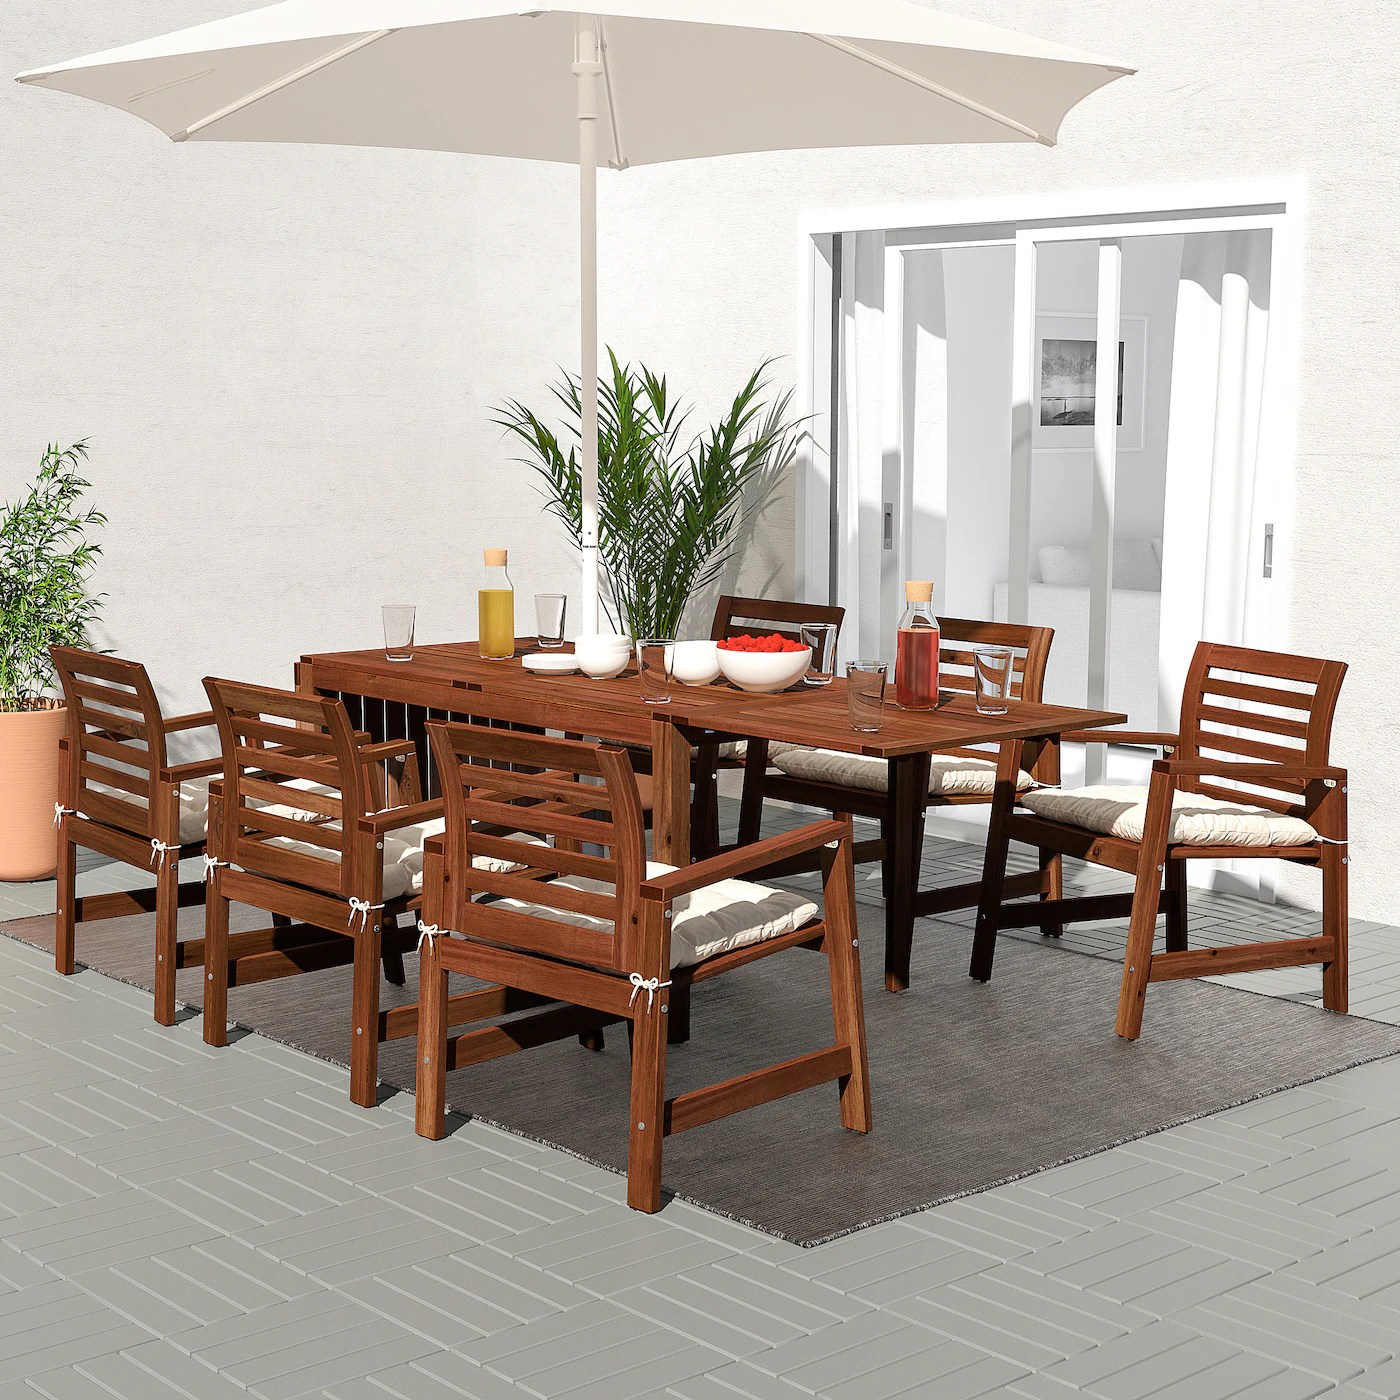 applaro table 6 armchairs outdoor brown stained